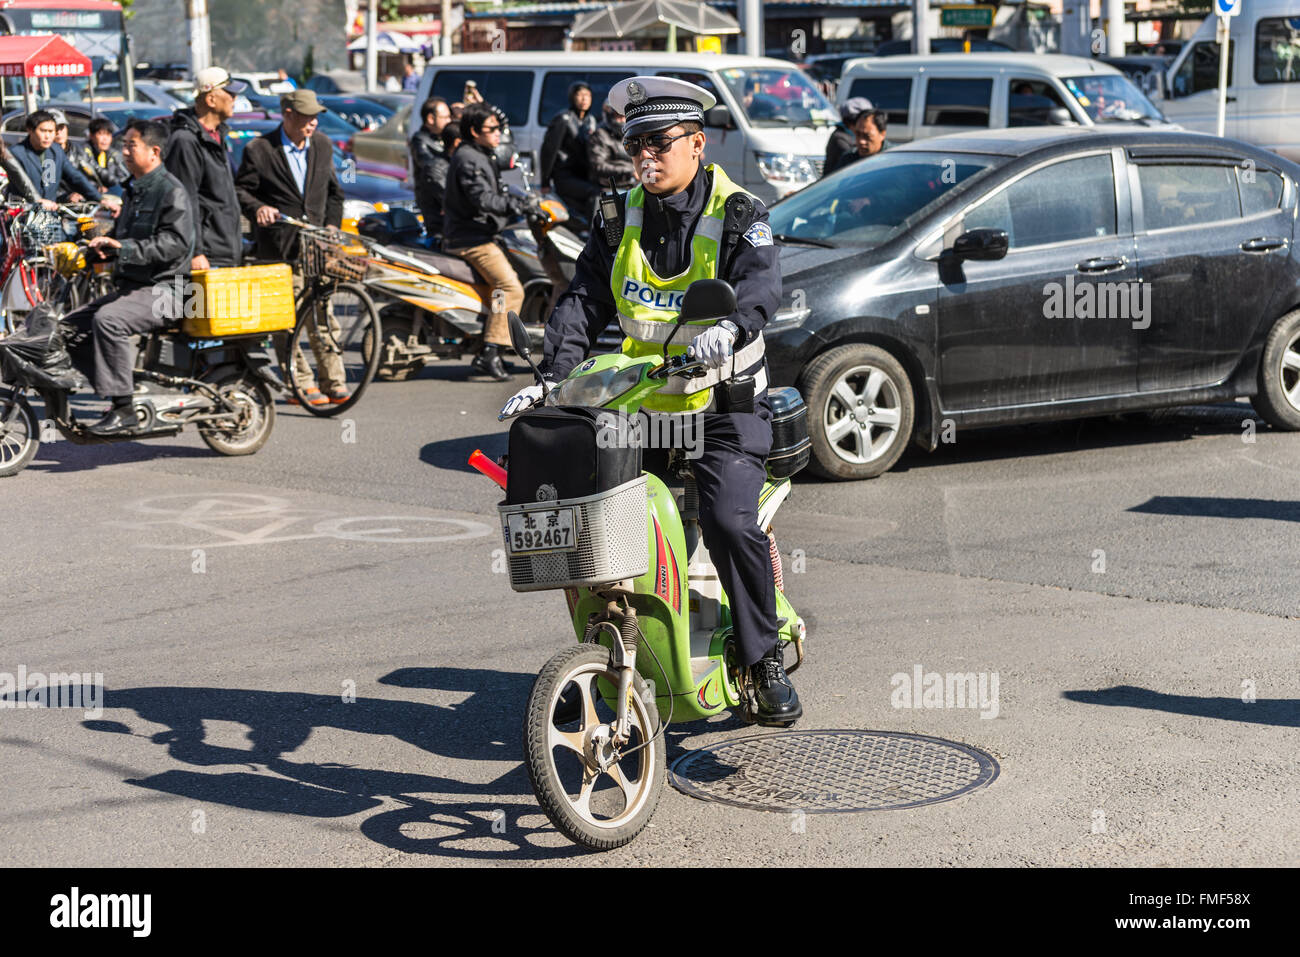 Chinese policeman patrol on motor scooters on a busy street in Beijing, China. - Stock Image